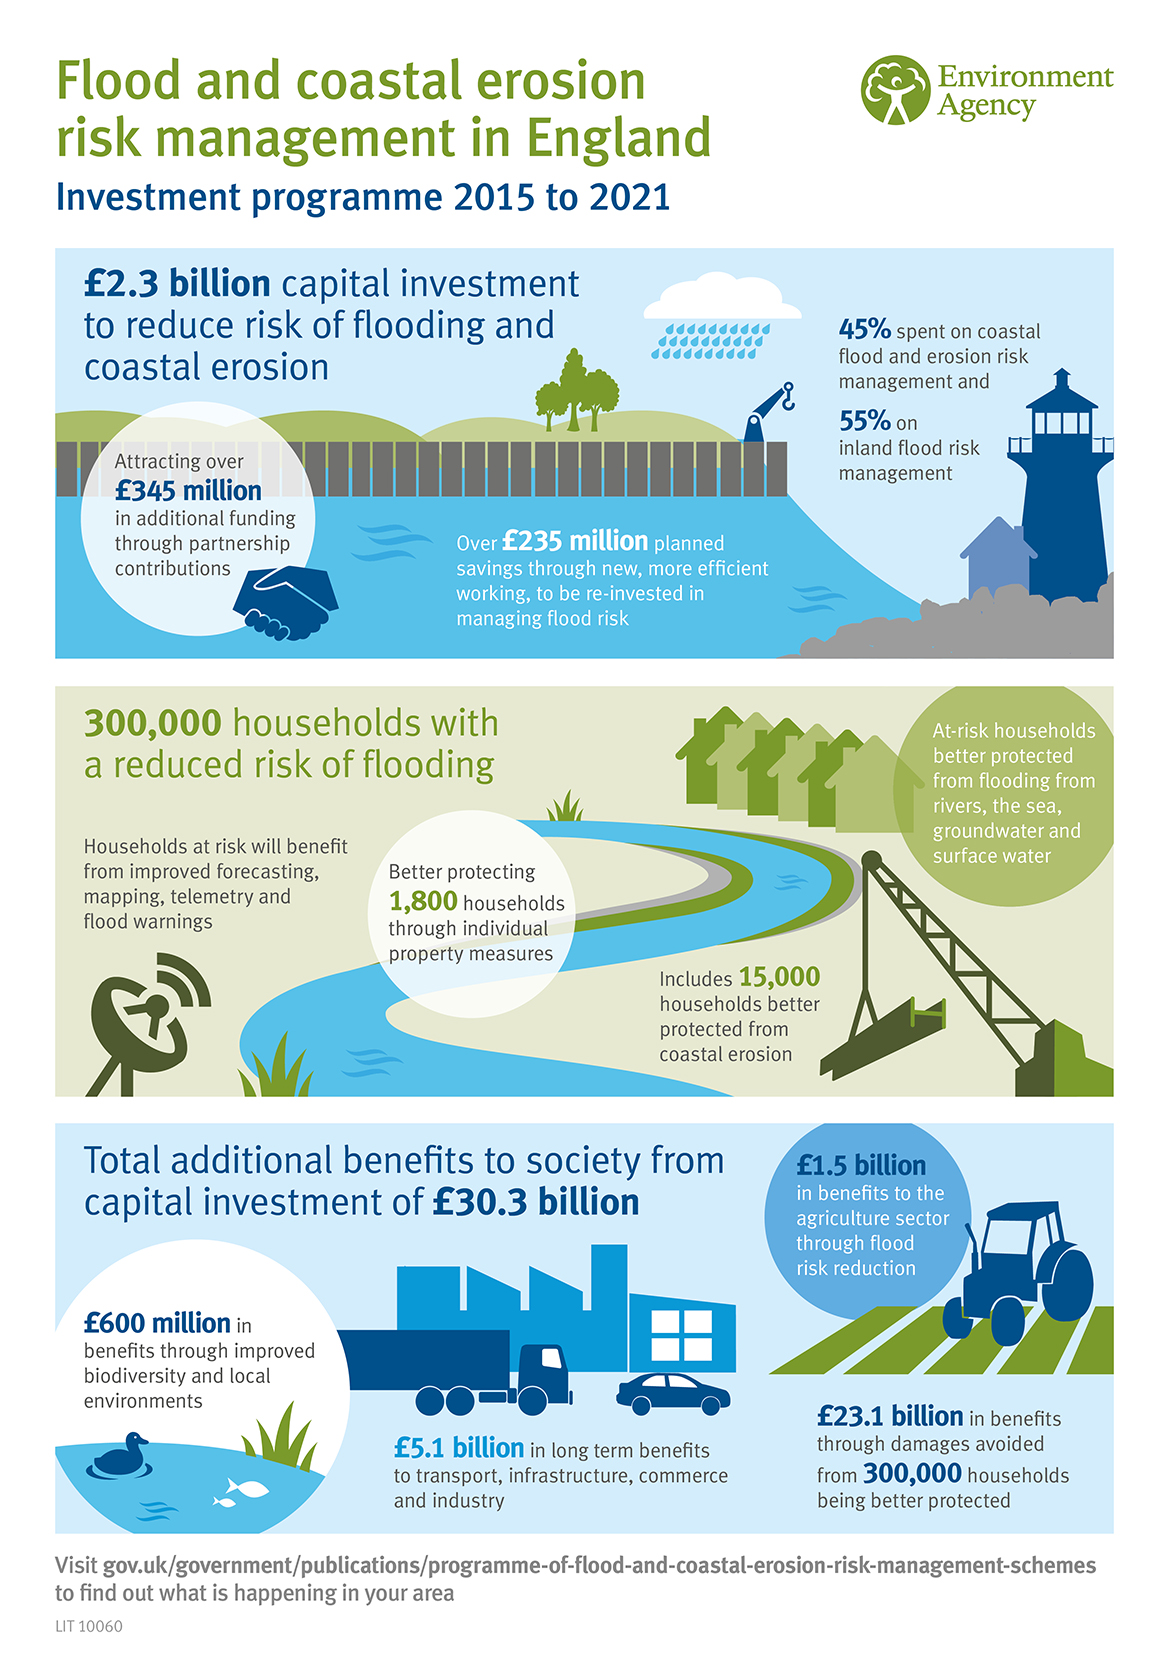 Nip14 Flooding Investment Plans Highlight Decline In